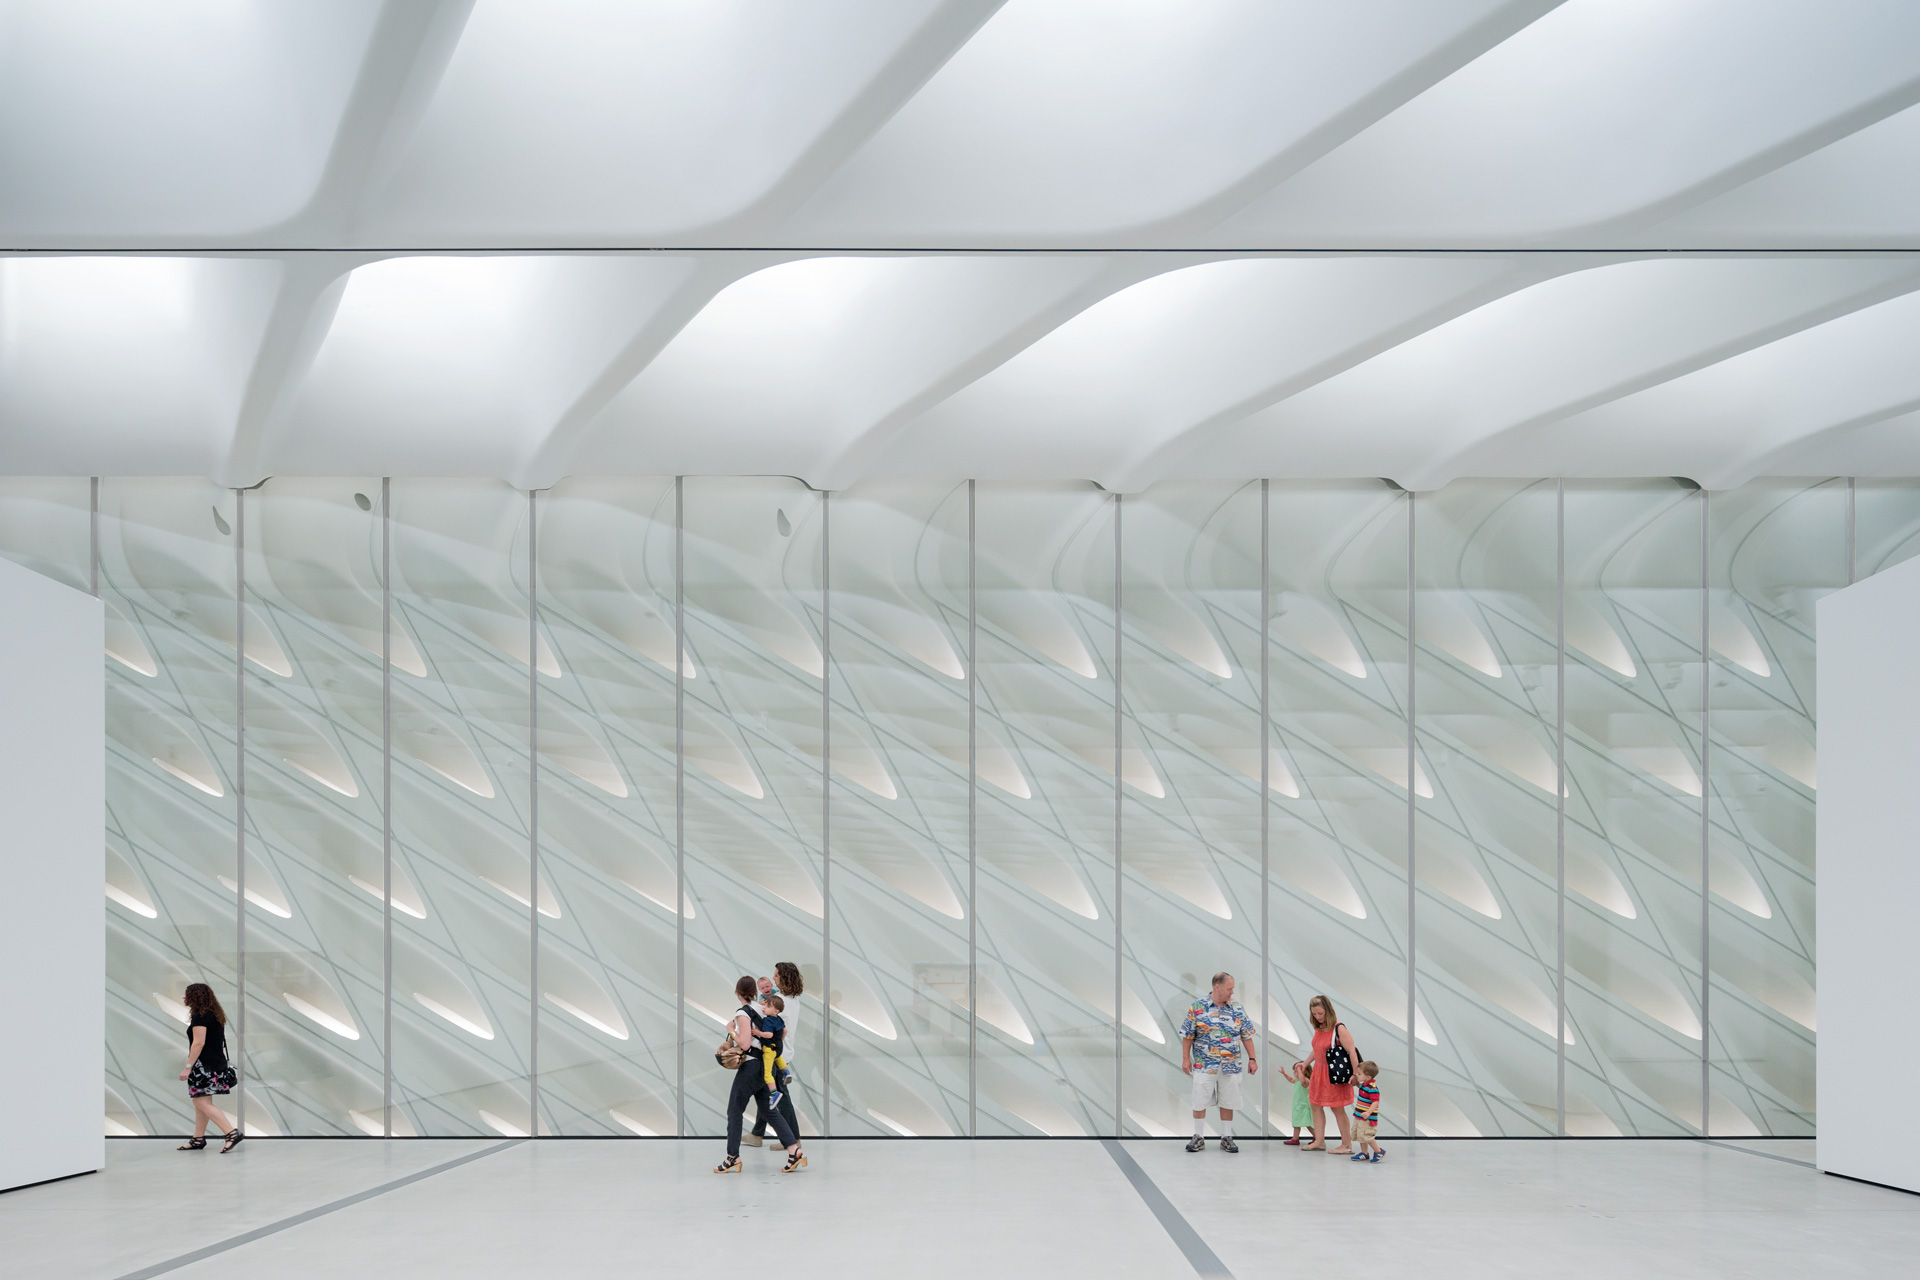 The Broad Museumu0027s Third Floor Galleries With Skylights And Interior Veil;  Photo By Iwan Baan